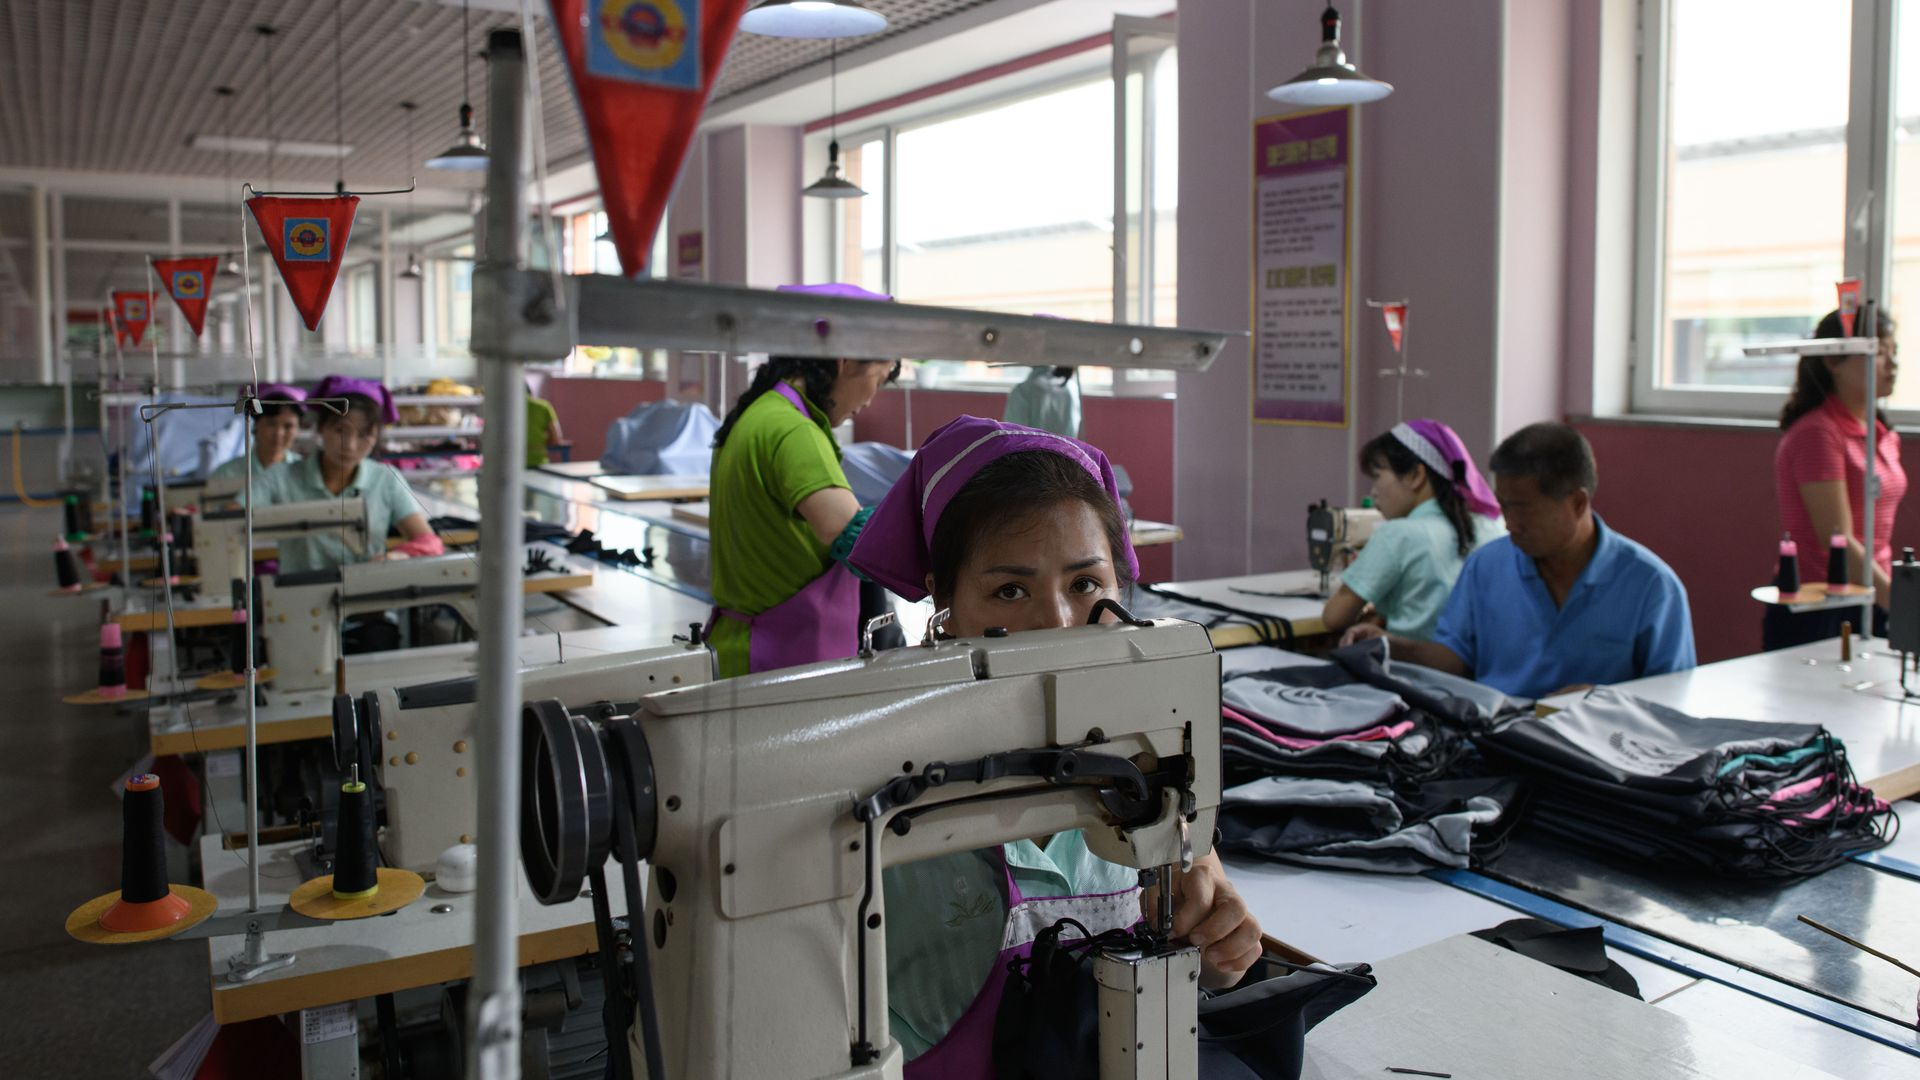 A North Korean woman with a pink bandana looks at the camera over a sewing machine in a factory